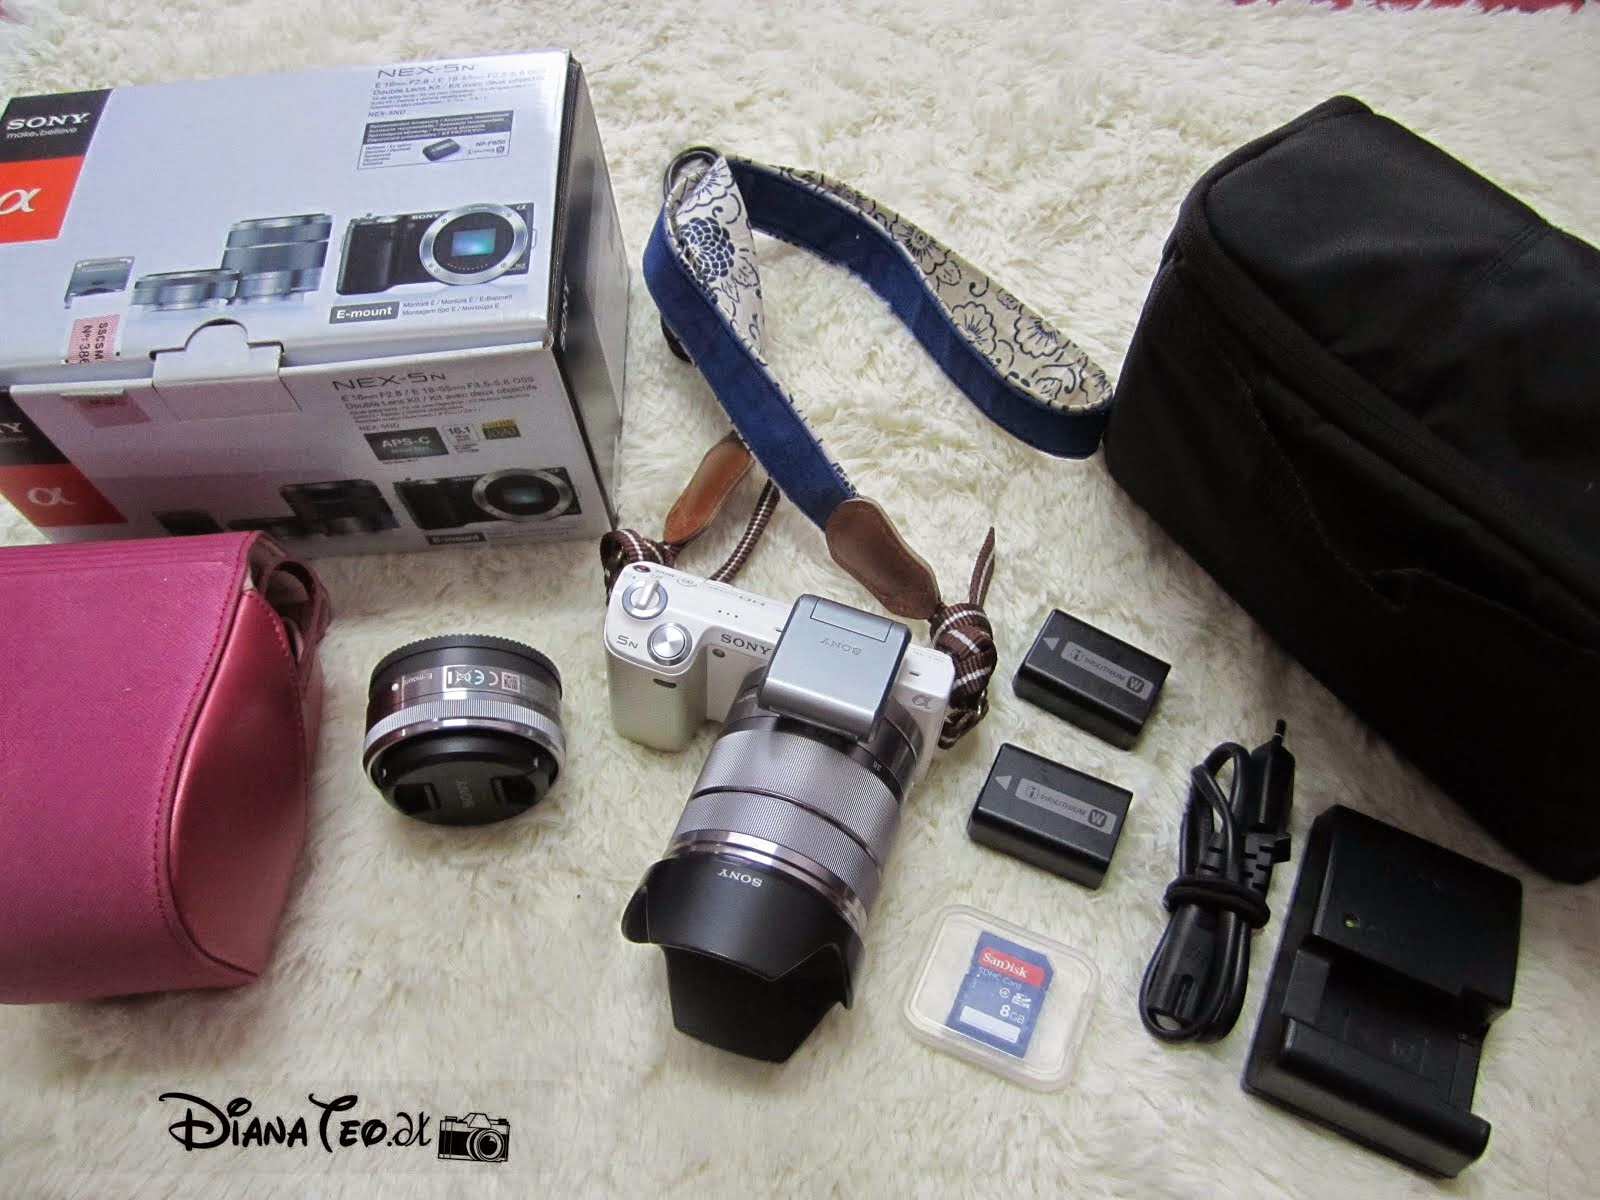 Preloved Item: My Sony NEX 5N